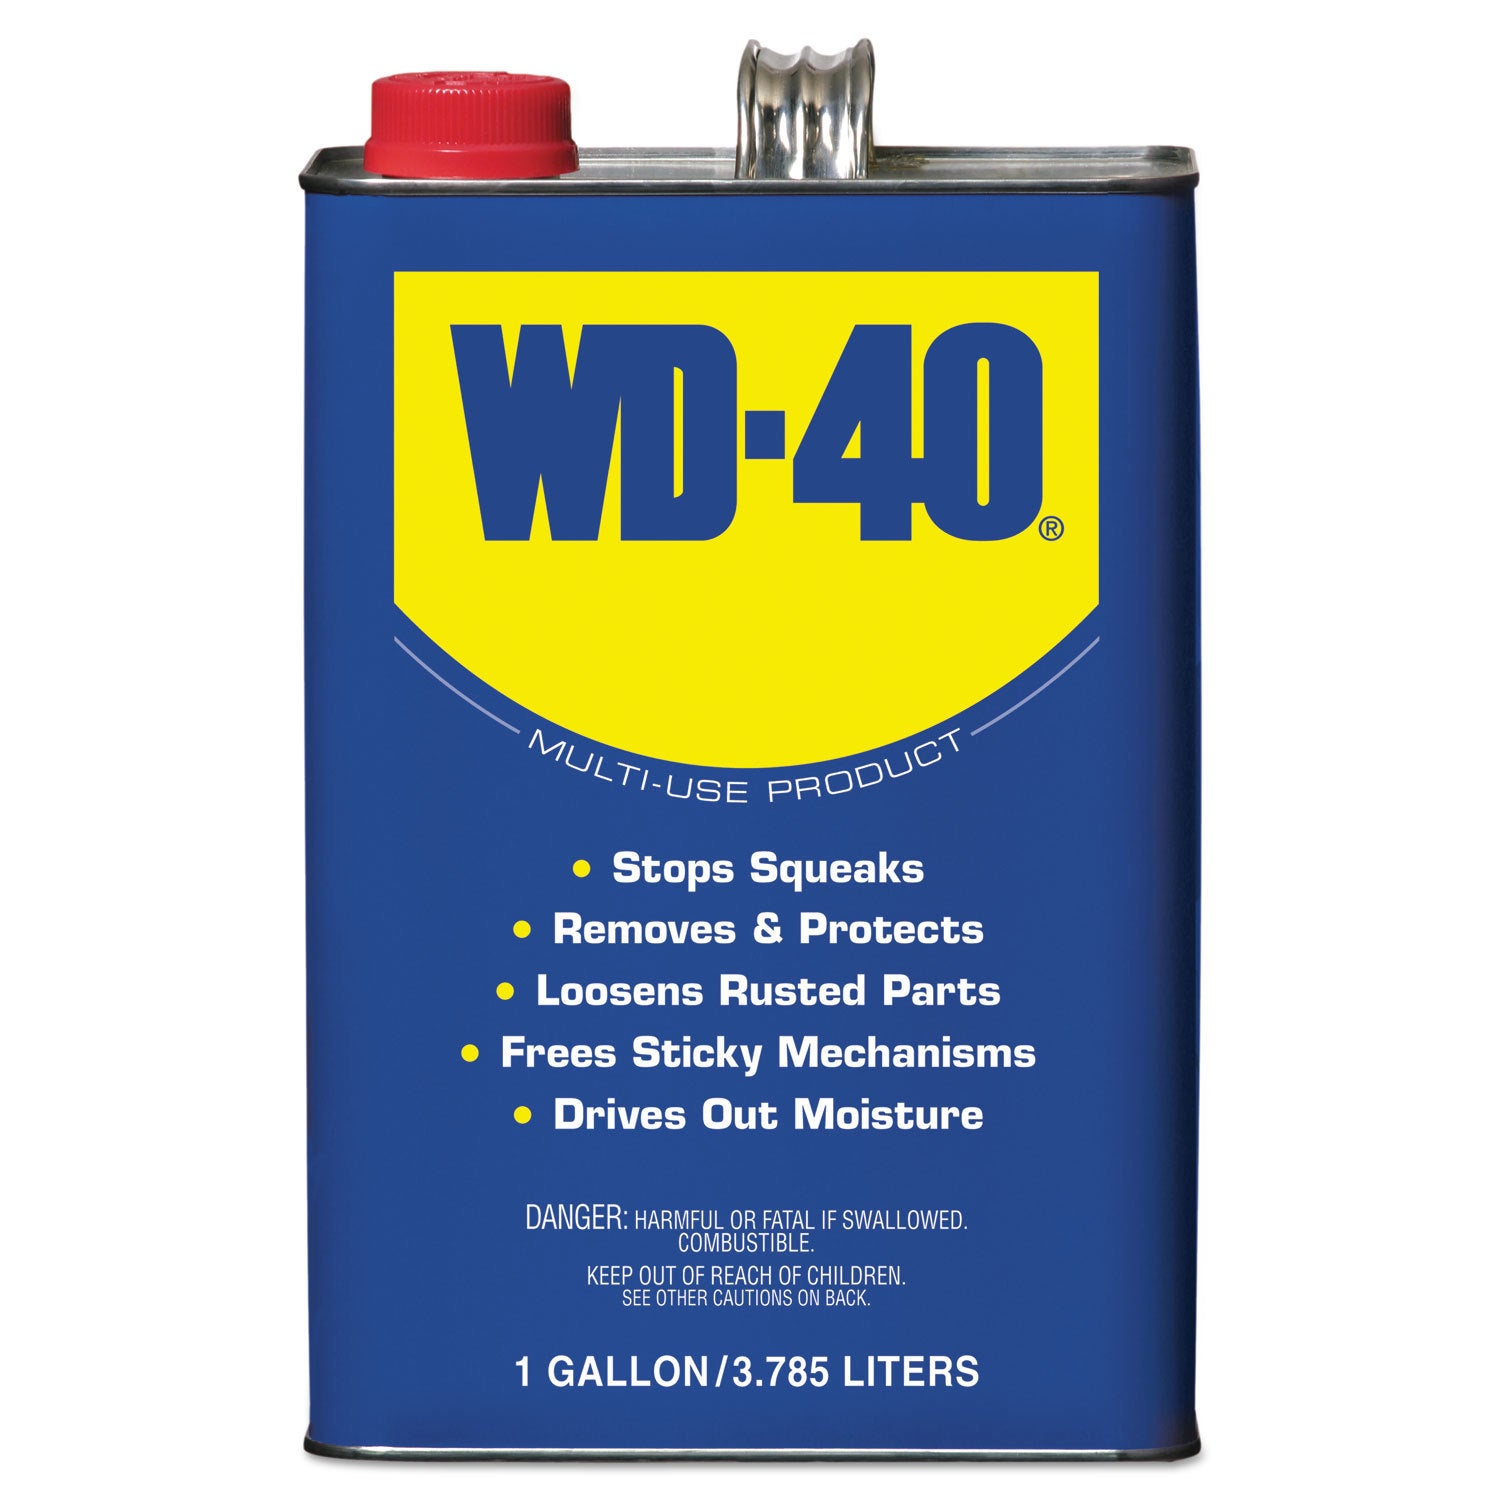 WD-40 Heavy-Duty Lubricant 1 Gallon Can (Chemical and Sol...